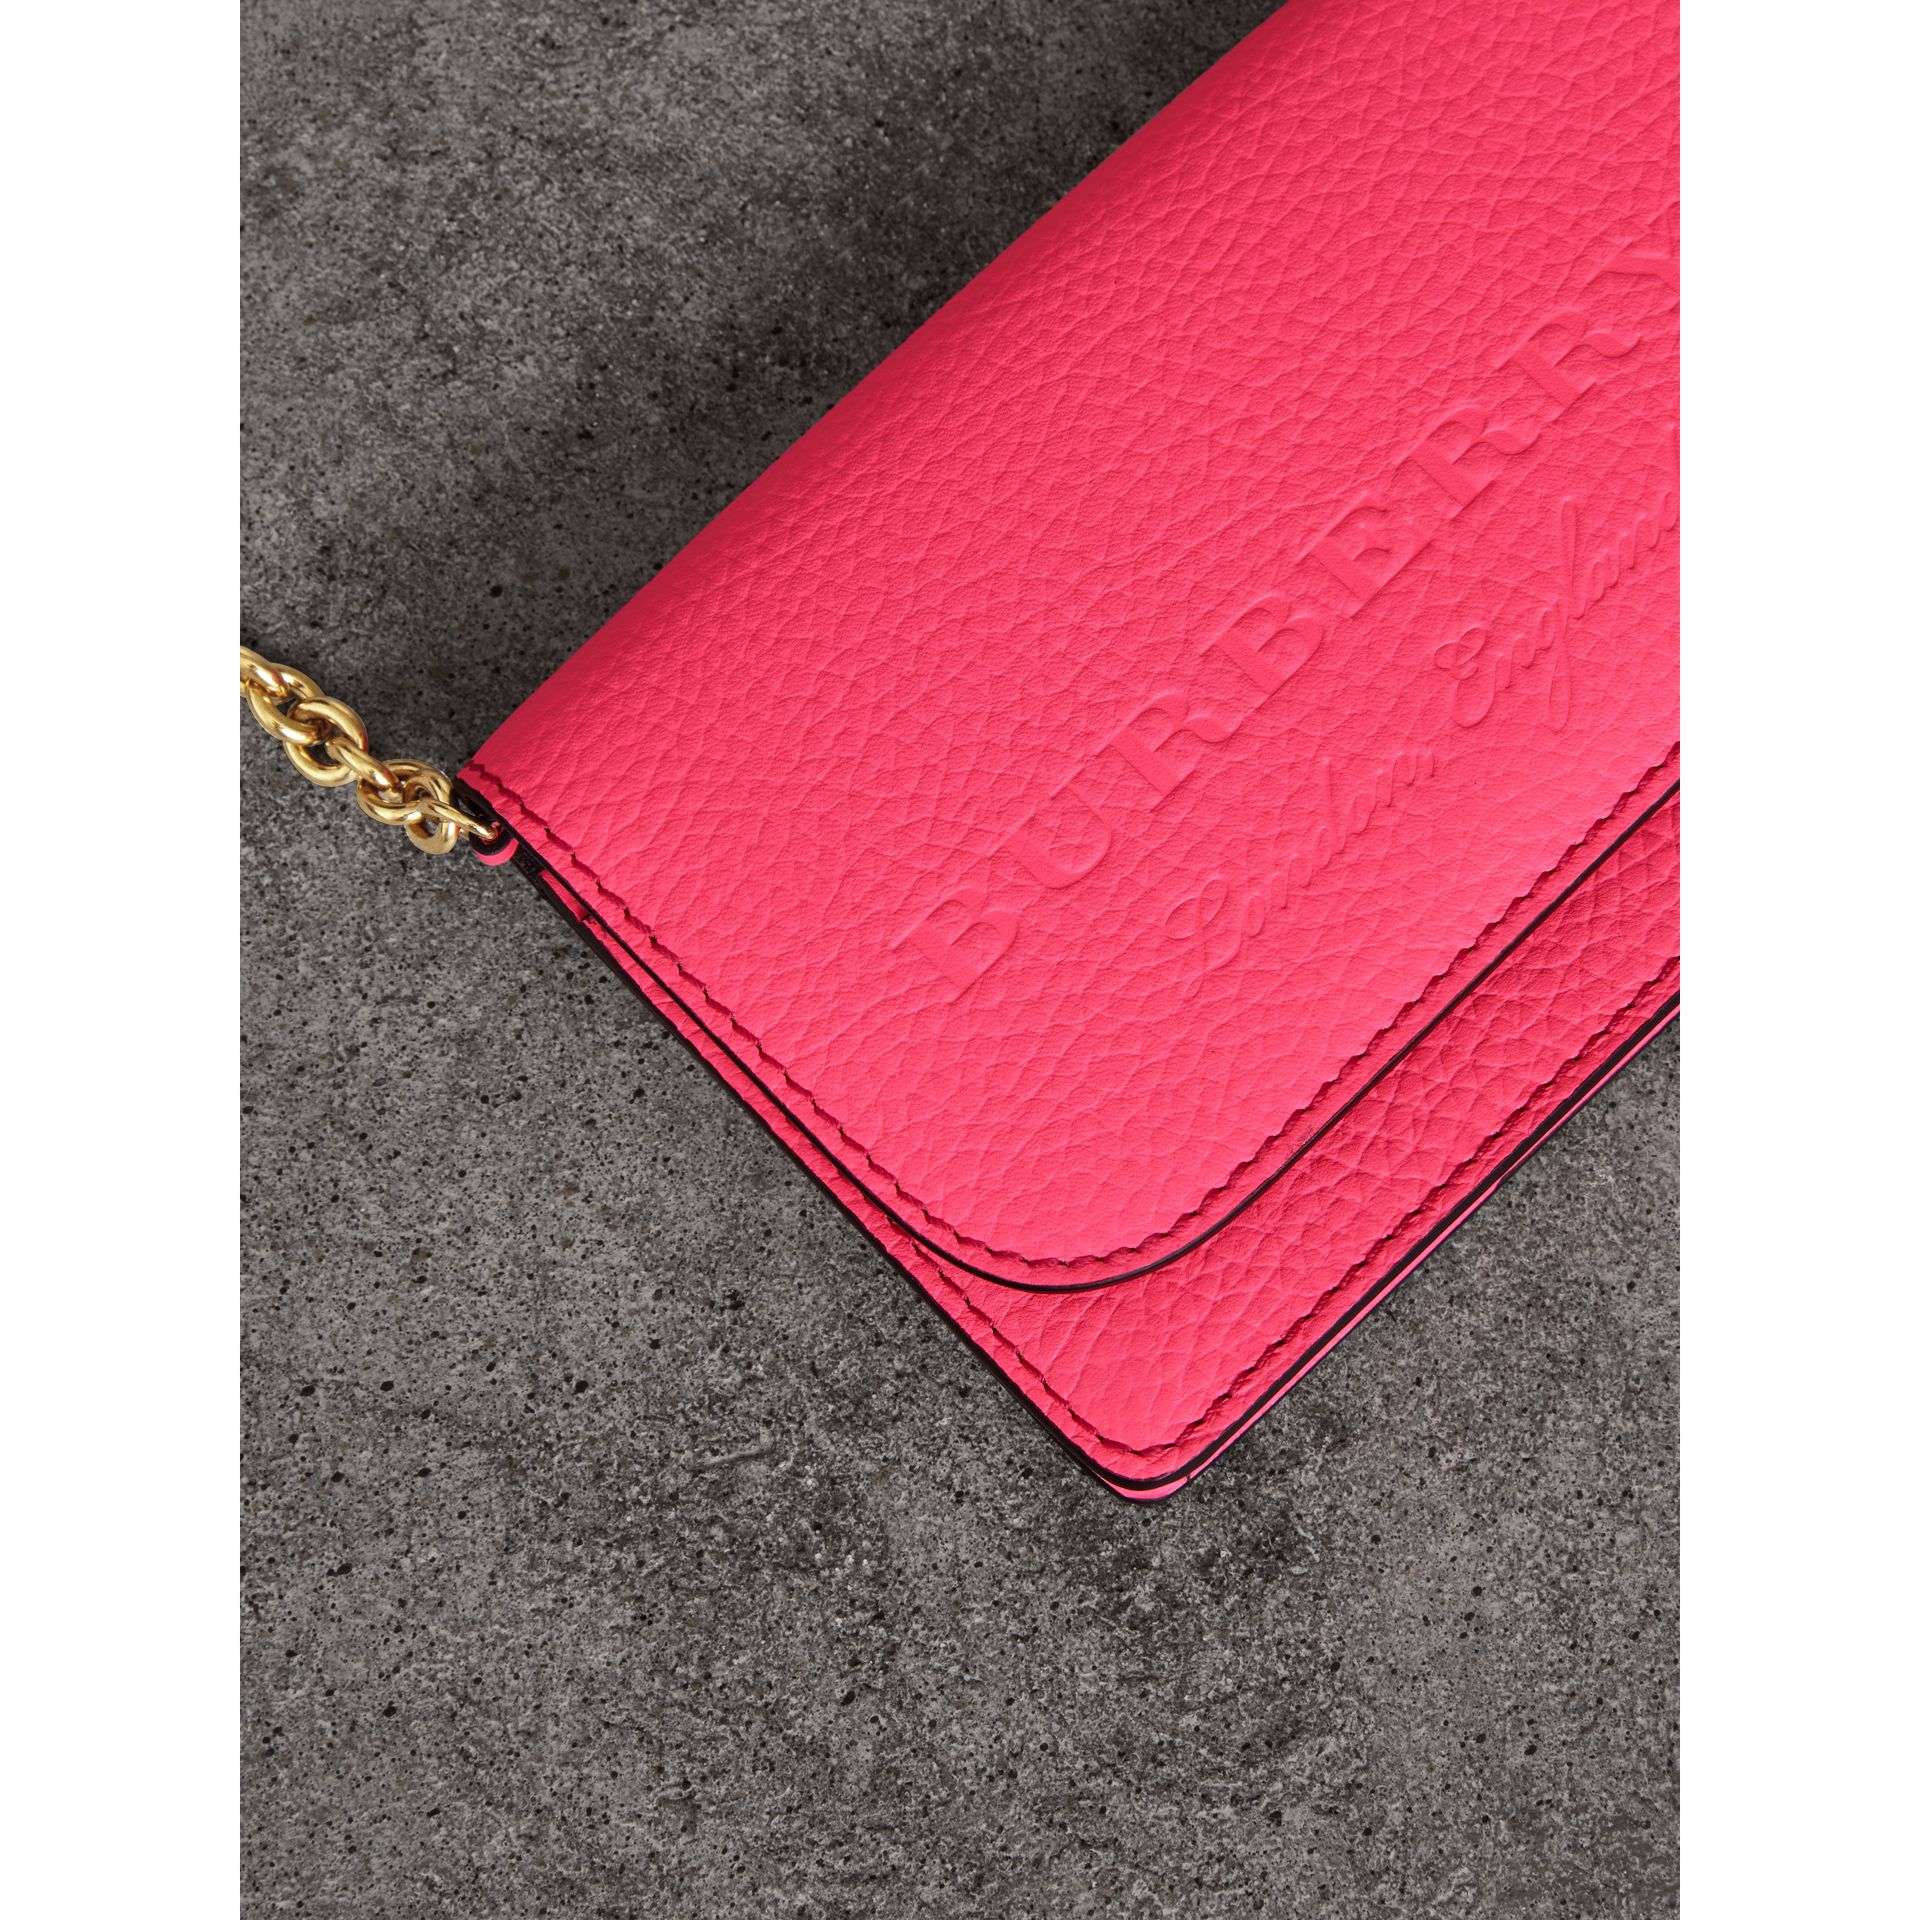 Embossed Leather Wallet with Detachable Strap in Bright Pink - Women | Burberry Hong Kong - gallery image 1